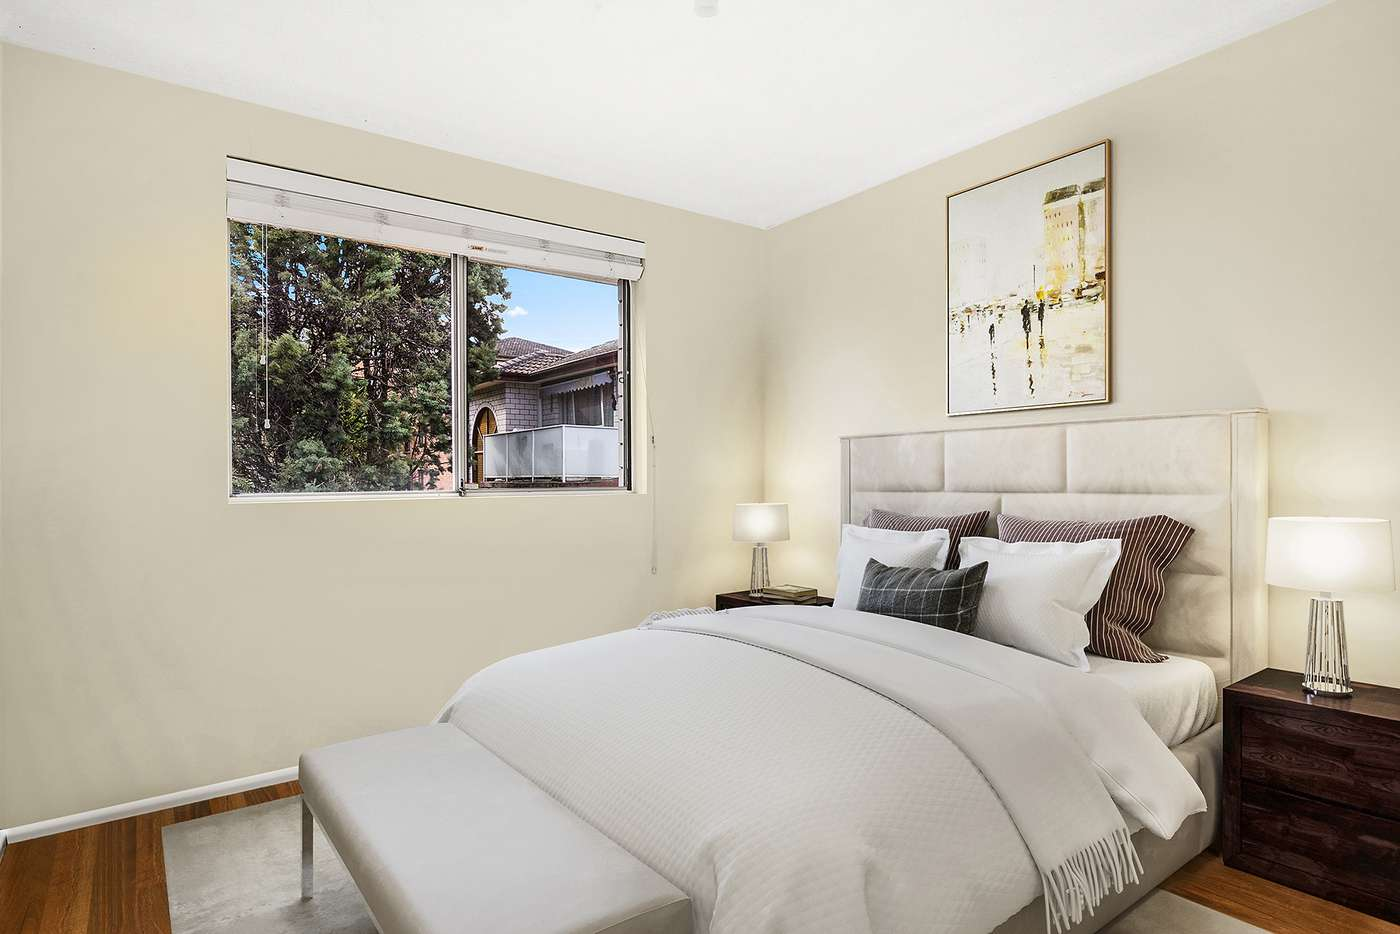 Fifth view of Homely apartment listing, 22/76-80 Hunter Street, Hornsby NSW 2077